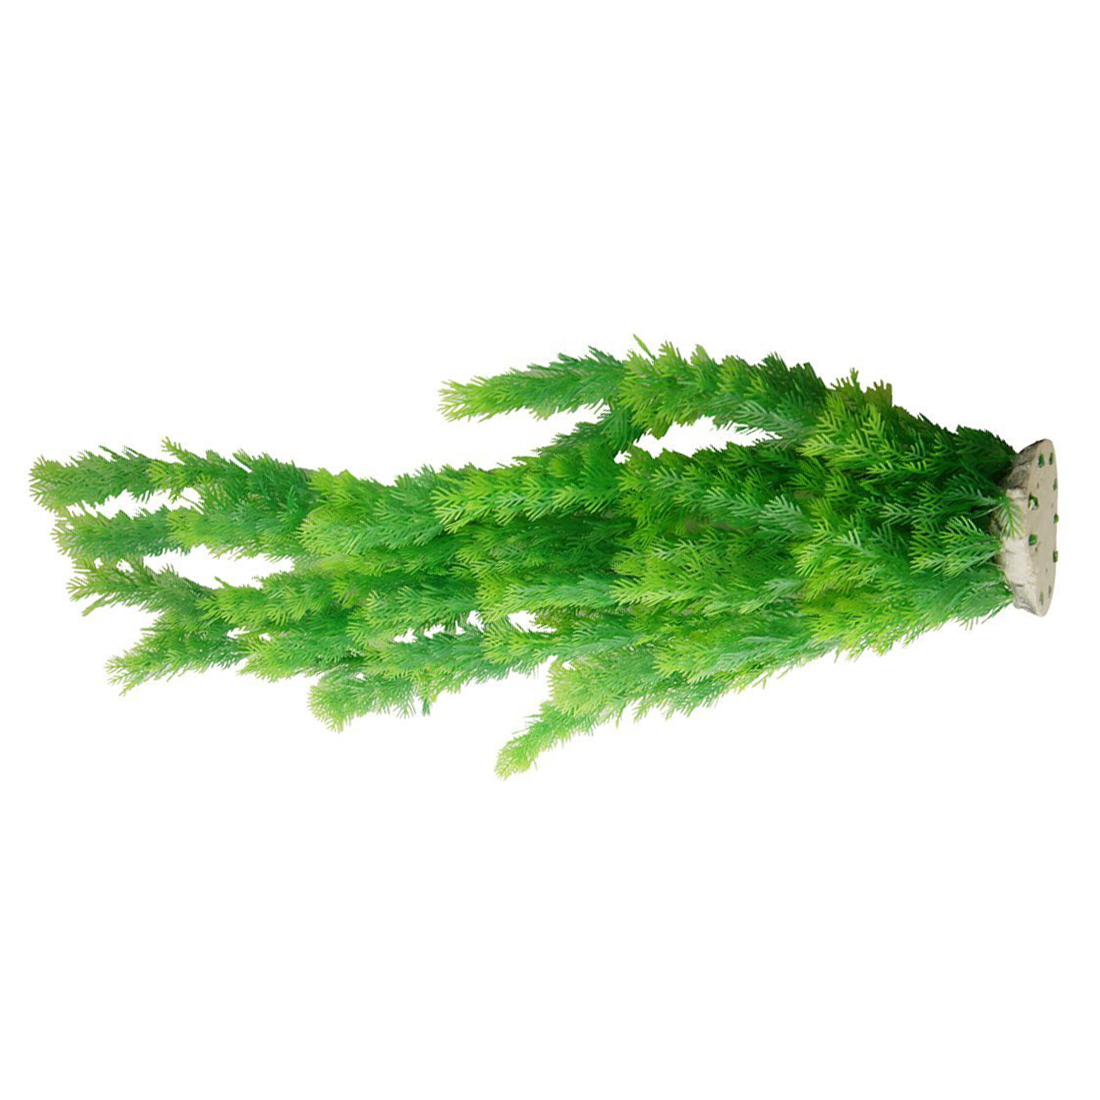 21 6 Height Green Plastic Artificial Water Plant Grass For Fish Tank 14q4 Ebay